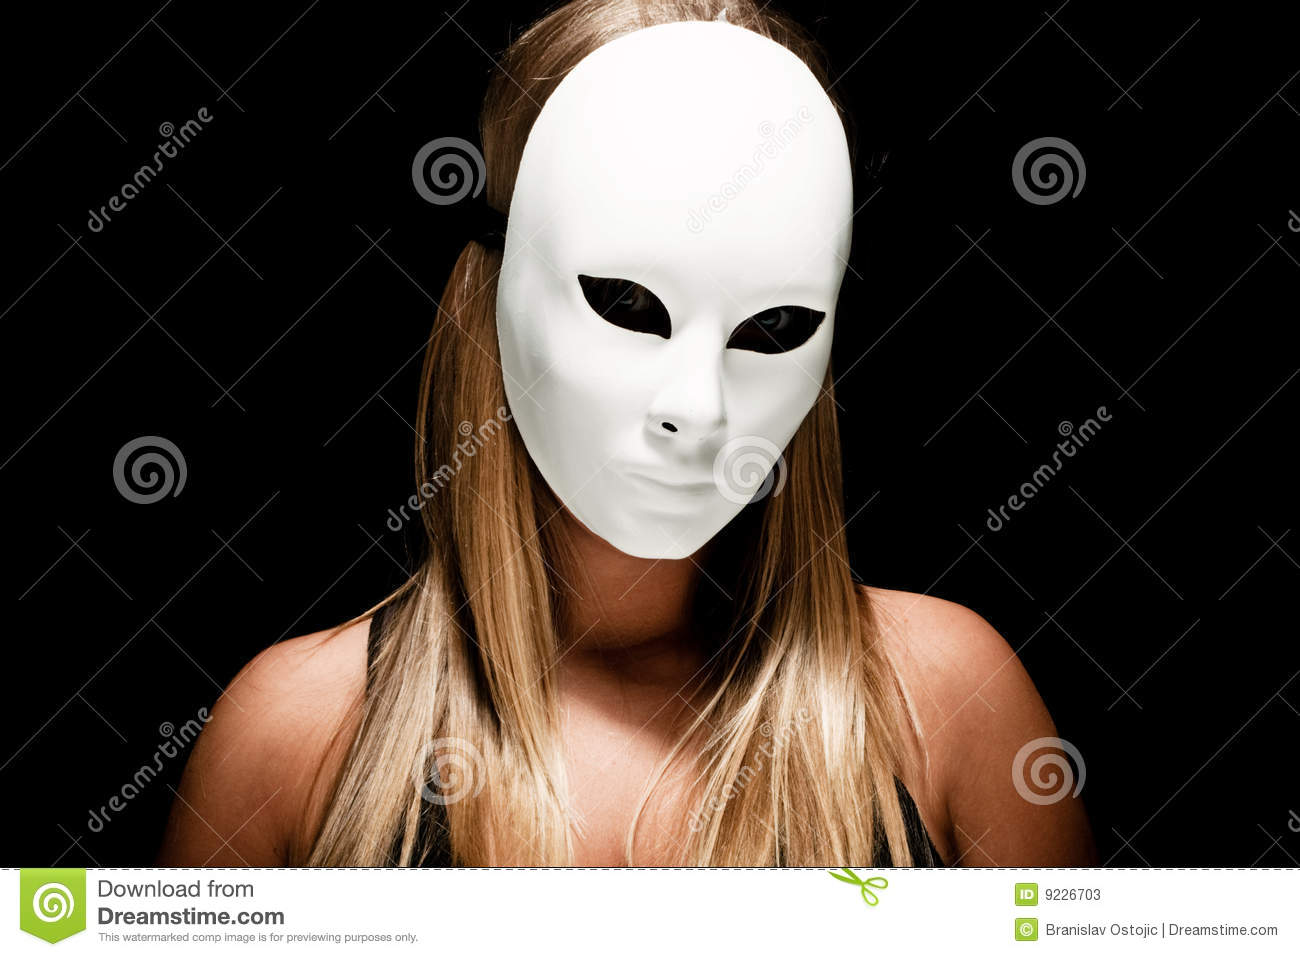 Woman With White Mask Stock Photos - Image: 9226703